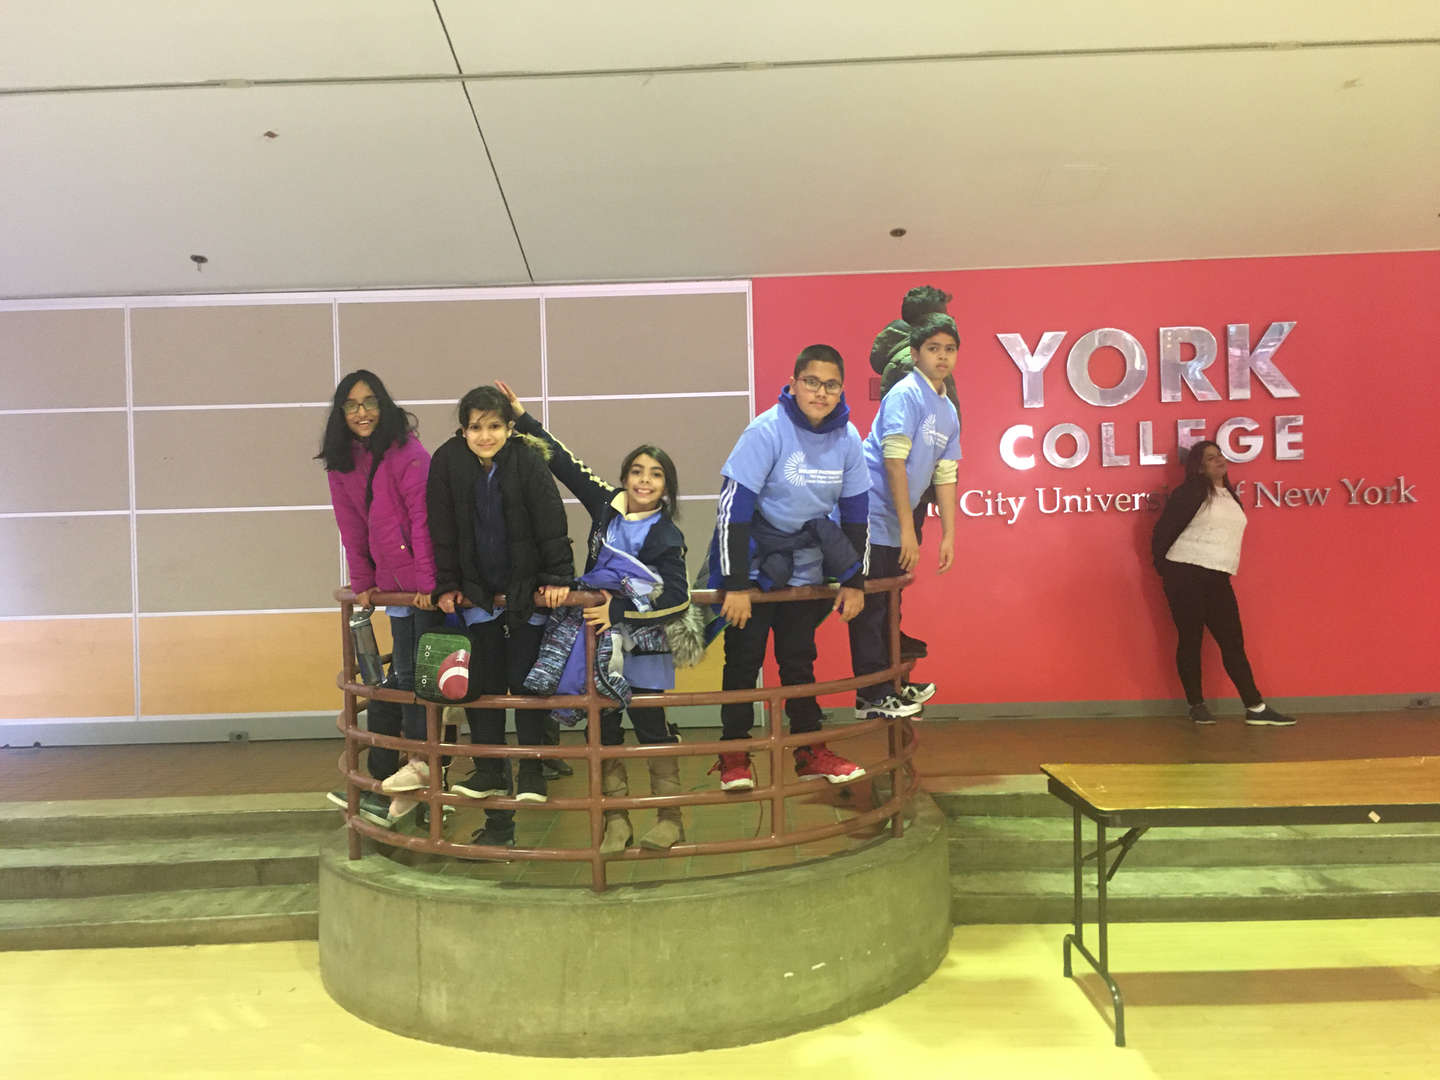 Students stand on a railing in front of the York College sign